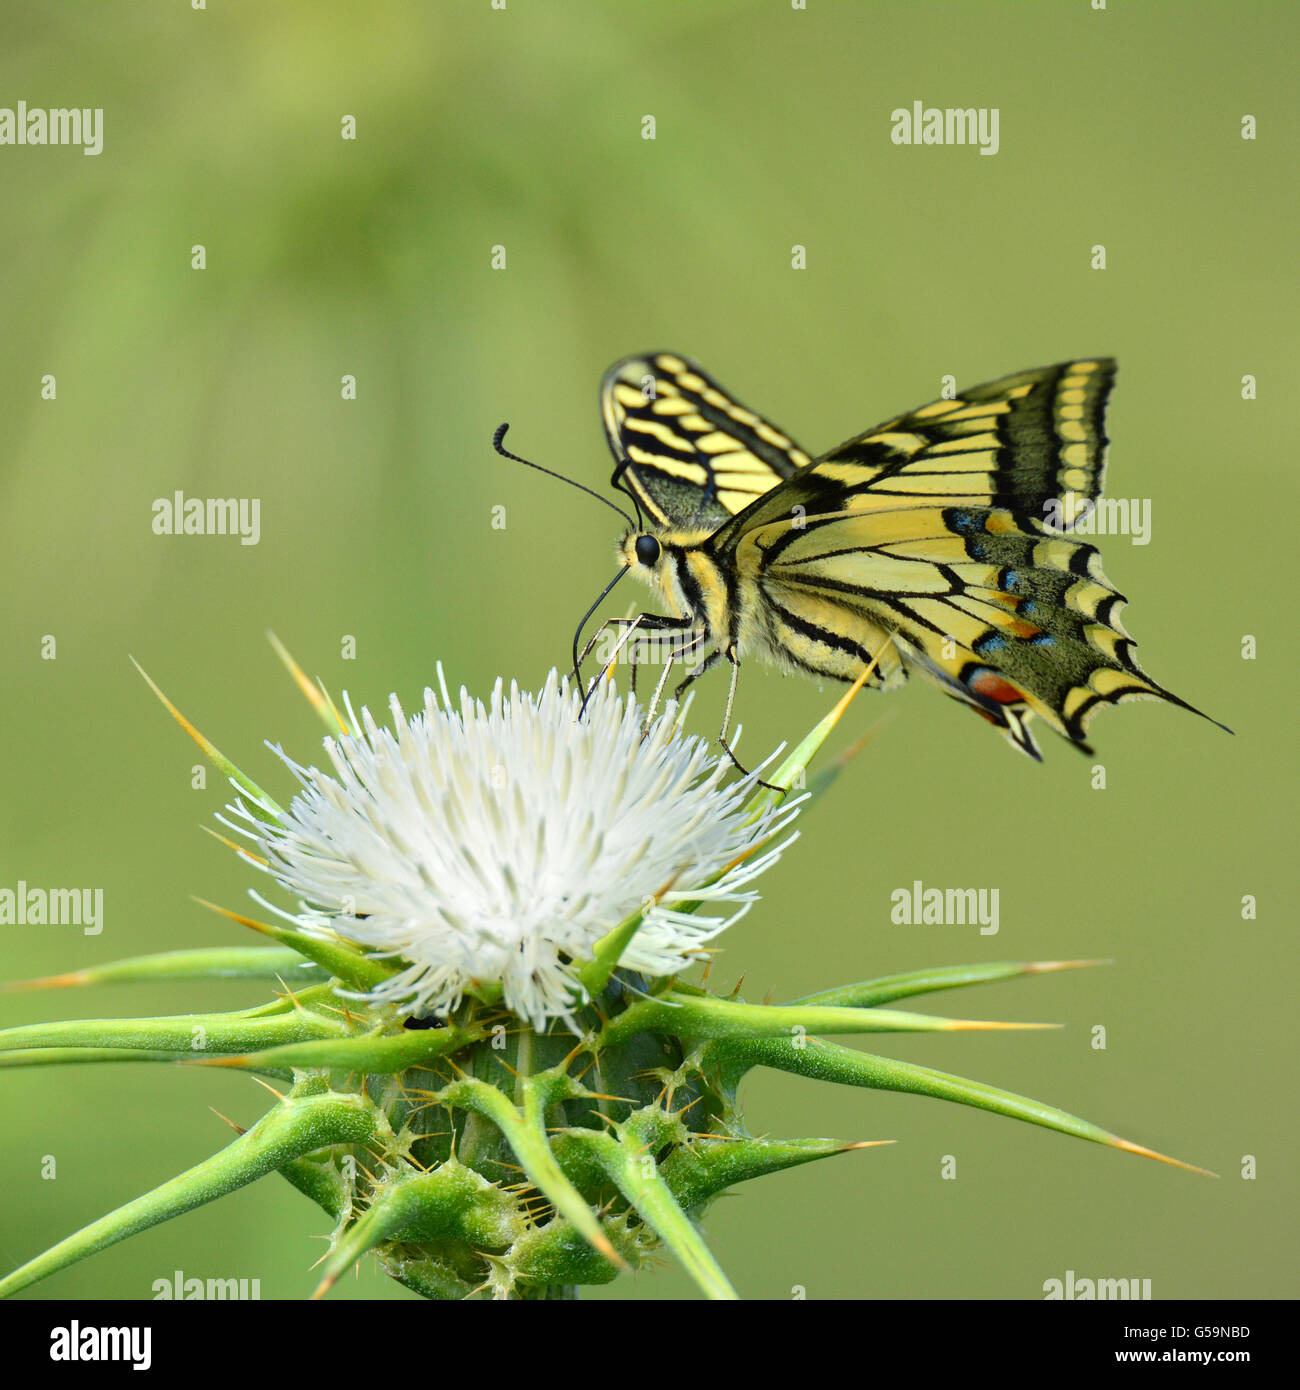 Swallowtail butterfly on thorn Stock Photo